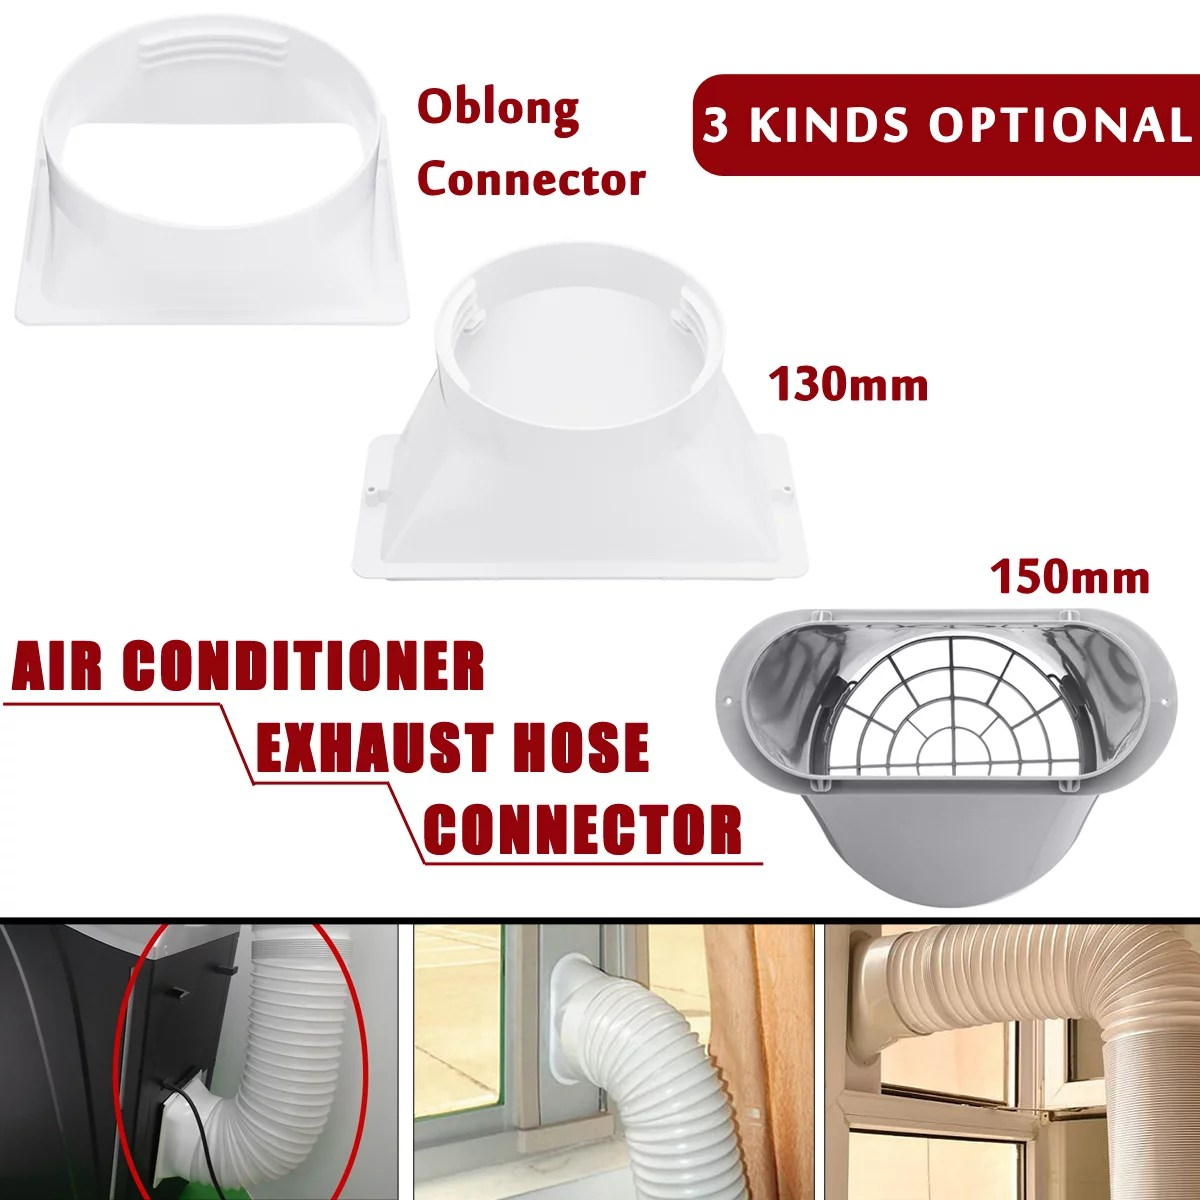 portable window exhaust hose tube connector for portable air conditioner fits 5 6